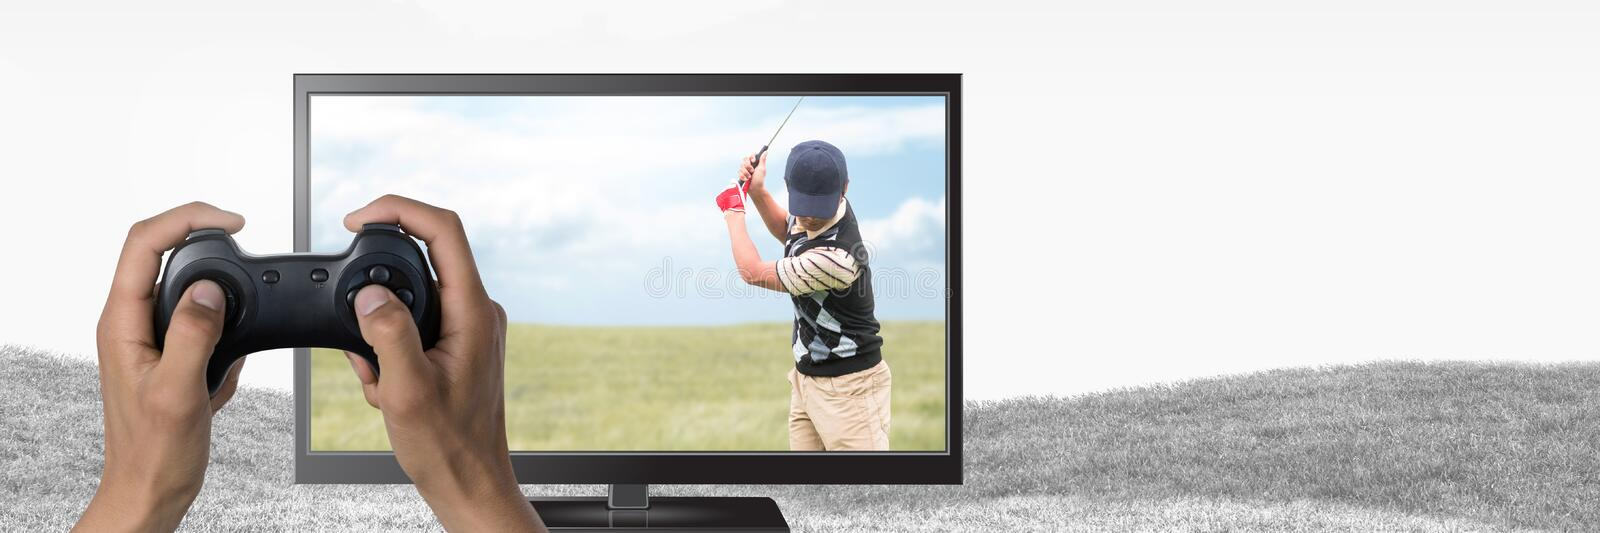 Hands holding gaming controller with golf player on television. Digital composite of Hands holding gaming controller with golf player on television royalty free stock image